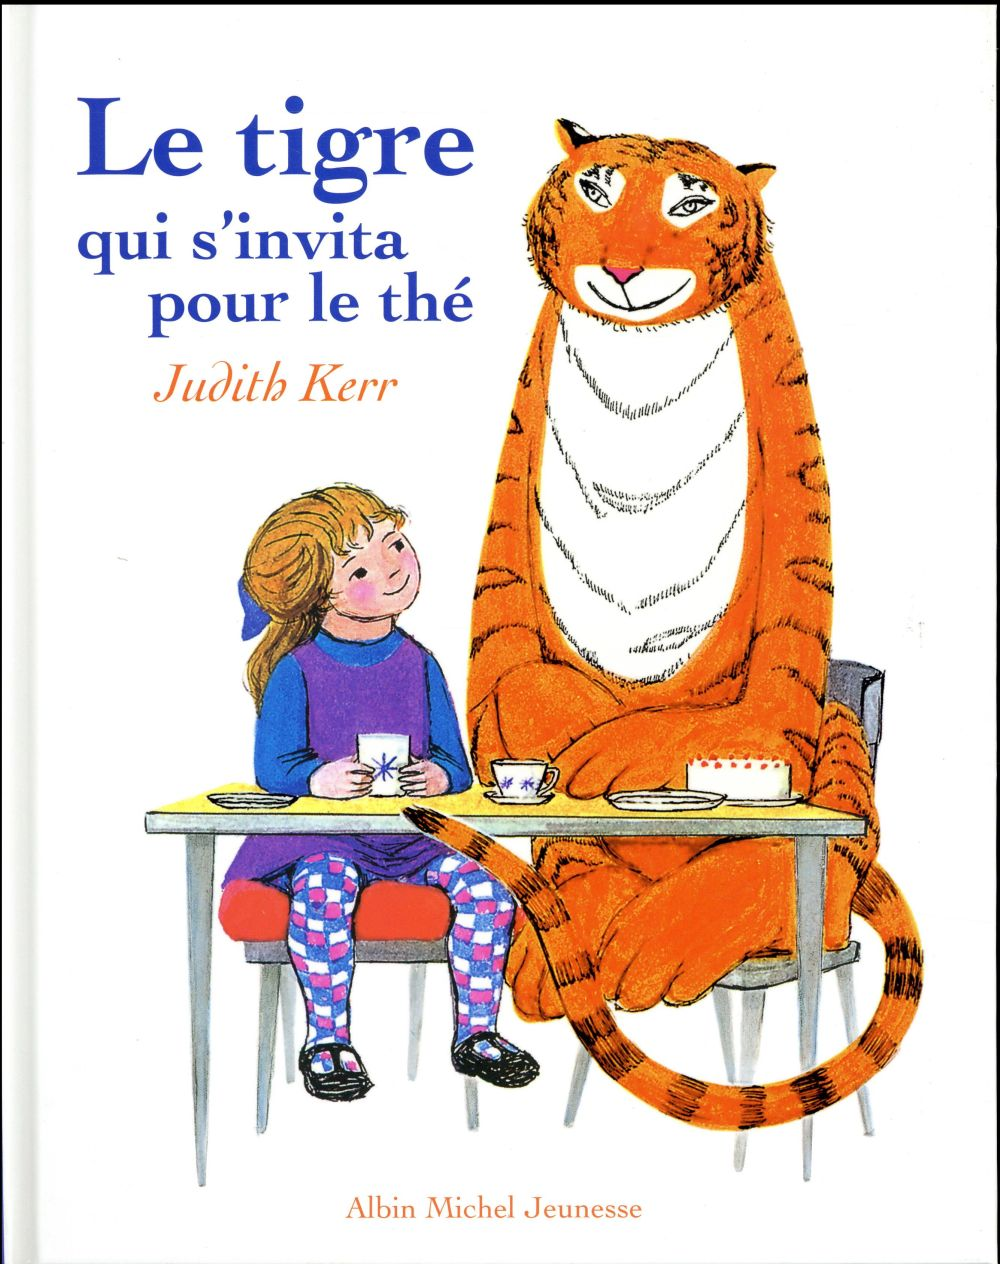 LE TIGRE QUI S'INVITA POUR LE THE